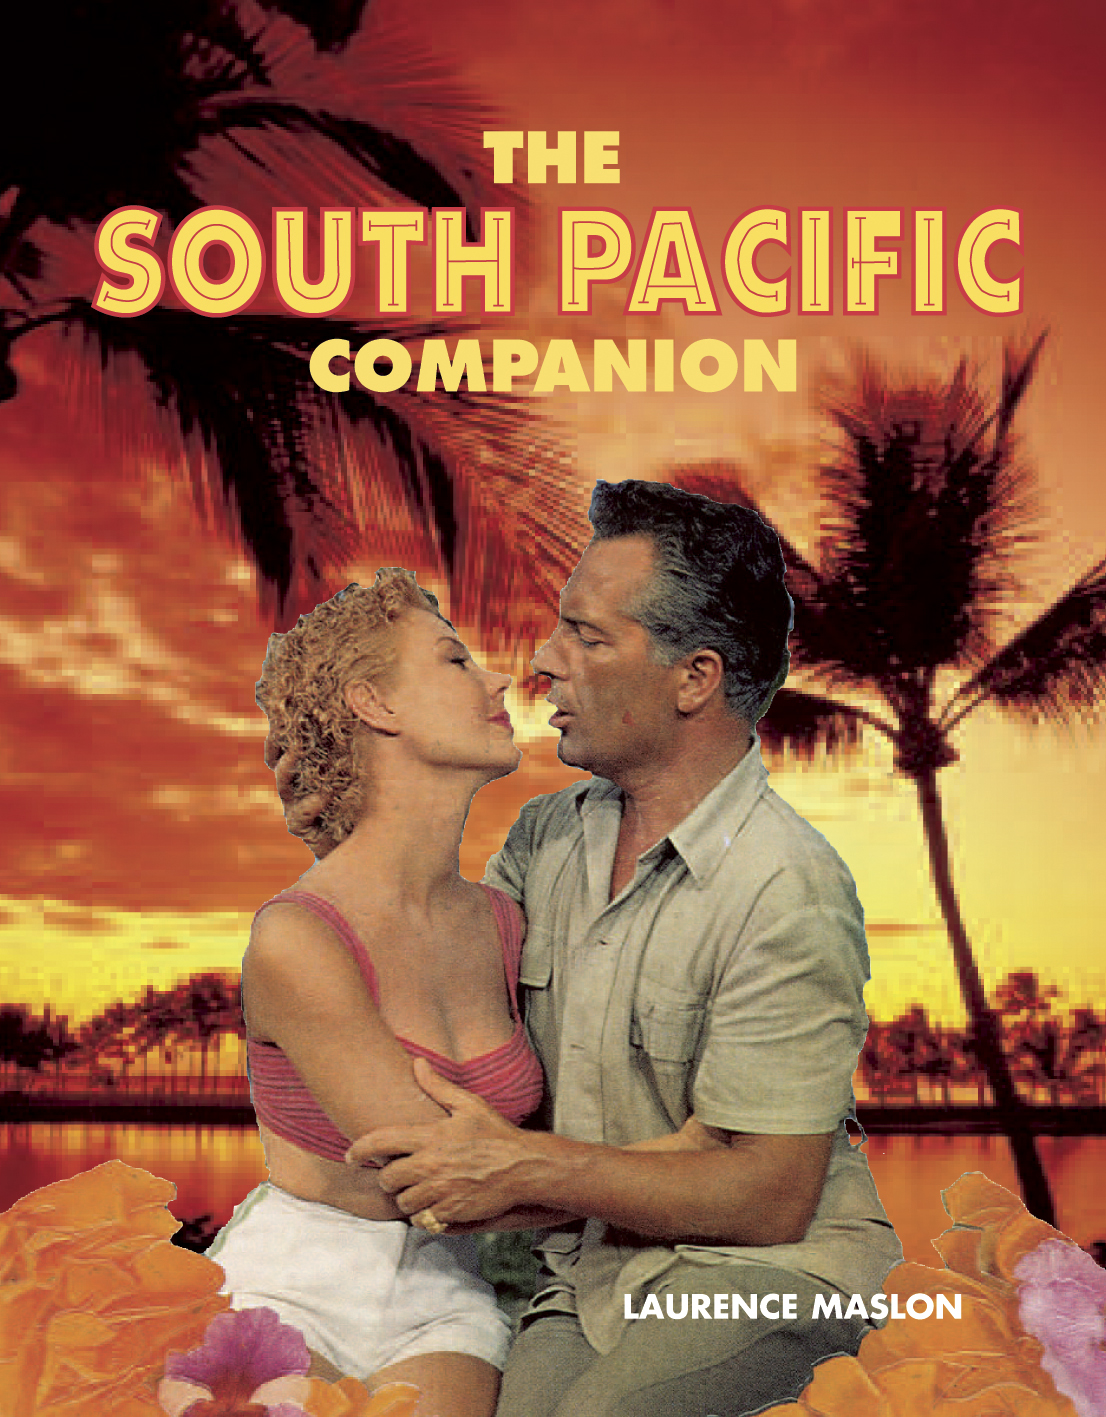 The South Pacific Companion